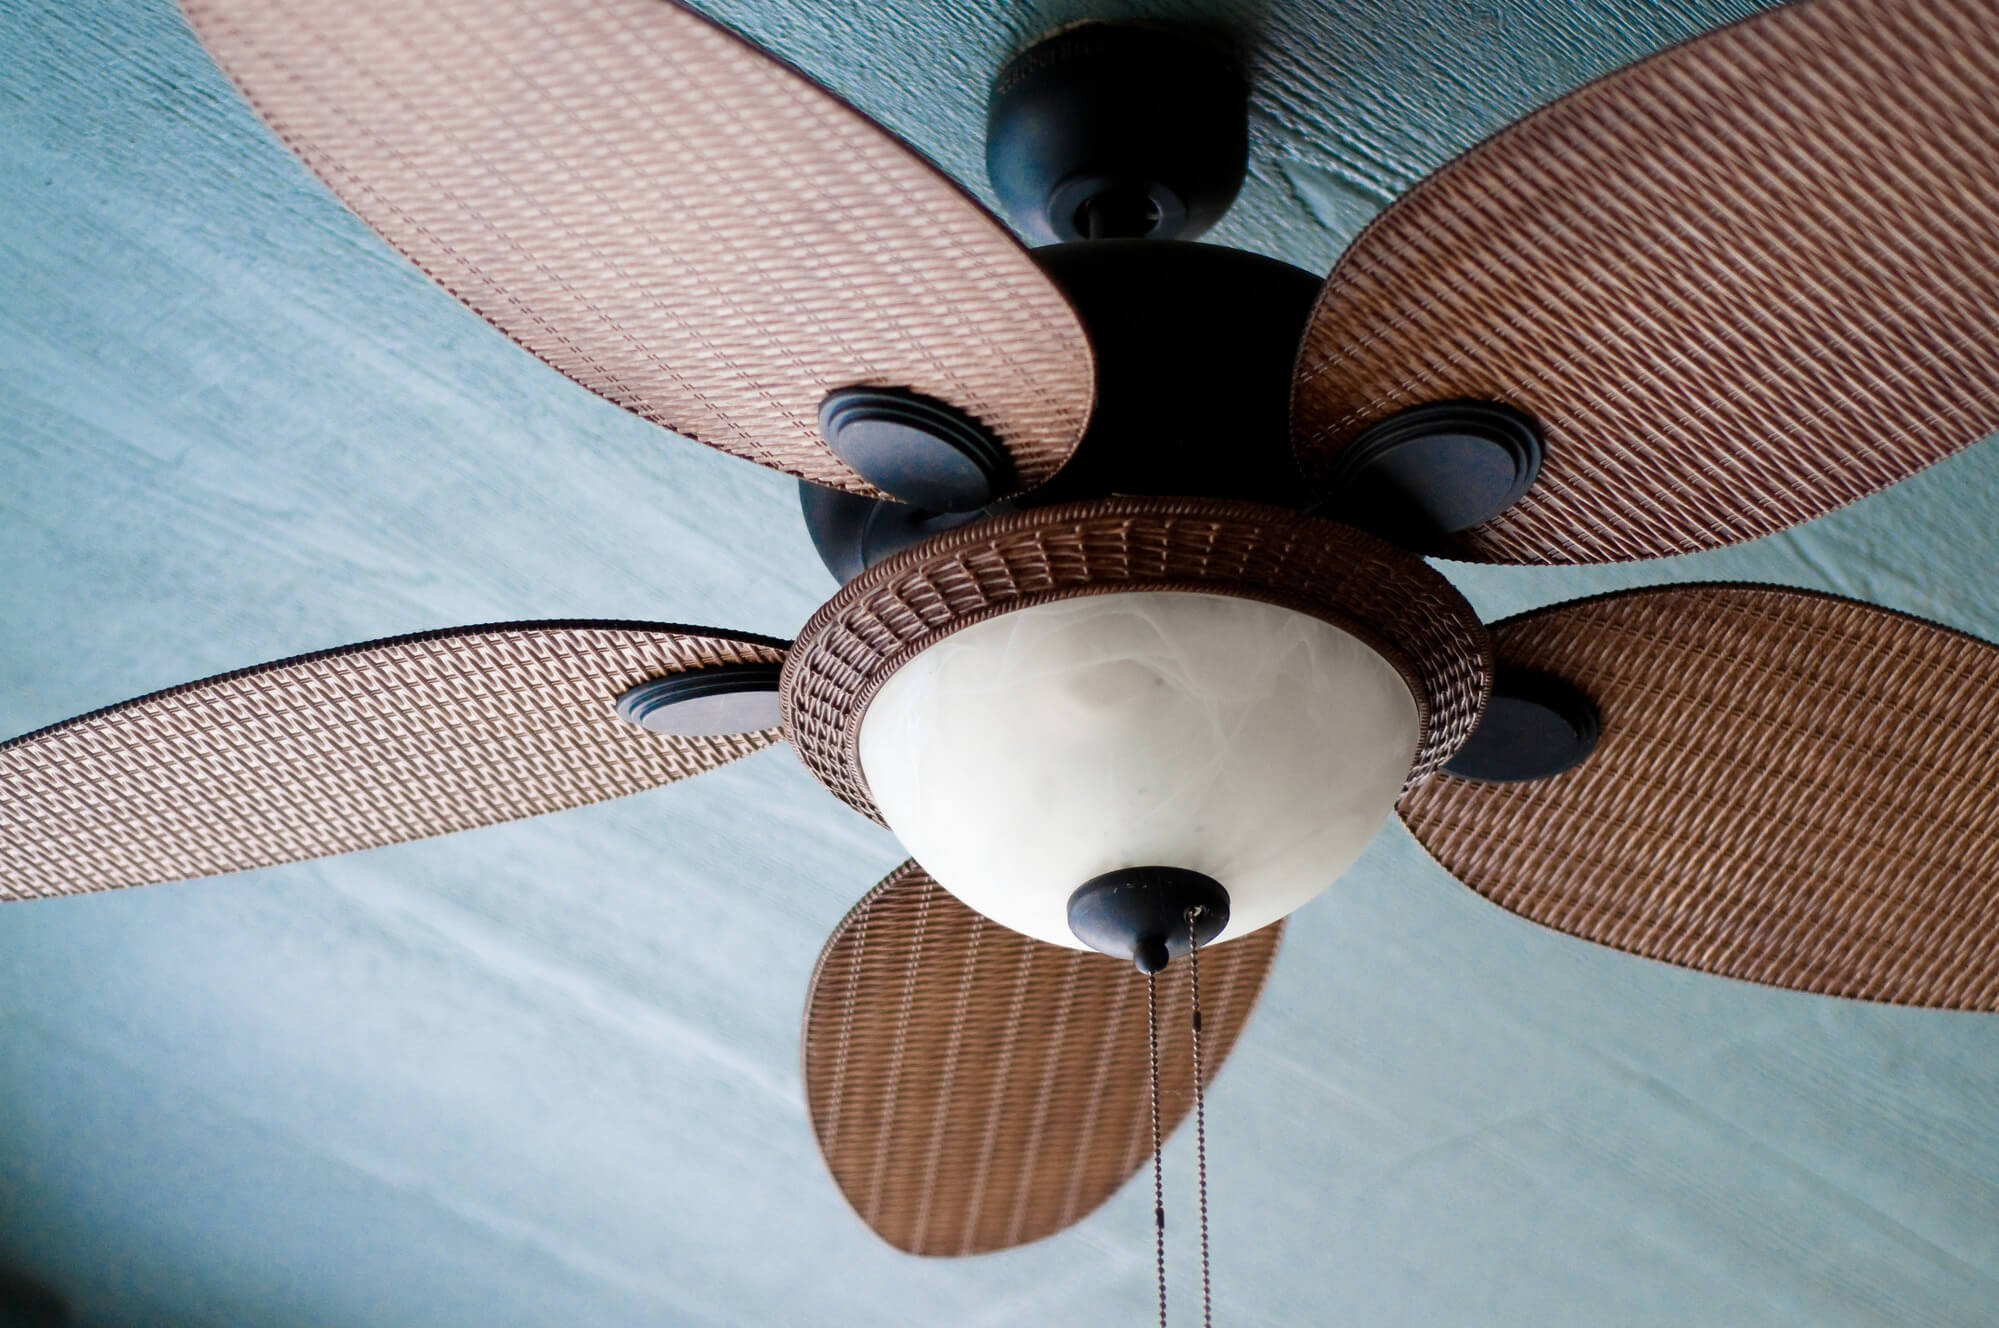 Fans air conditioning brisbane repairs service and installations ceiling fans work alongside air conditioning in brisbane mozeypictures Choice Image